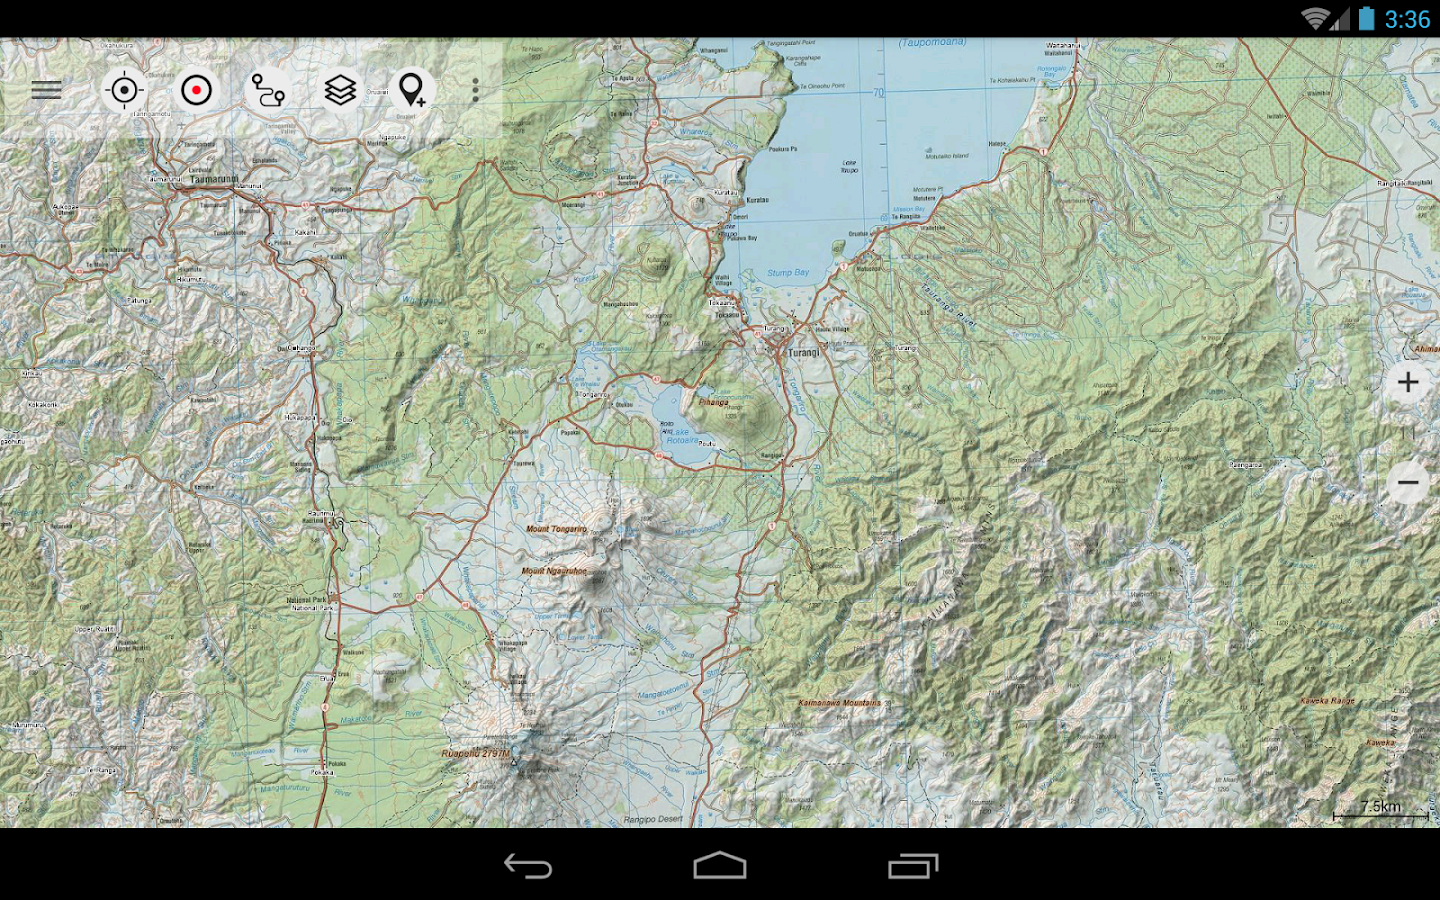 New Zealand Topo Maps Pro Android Apps On Google Play - Us topo maps pro